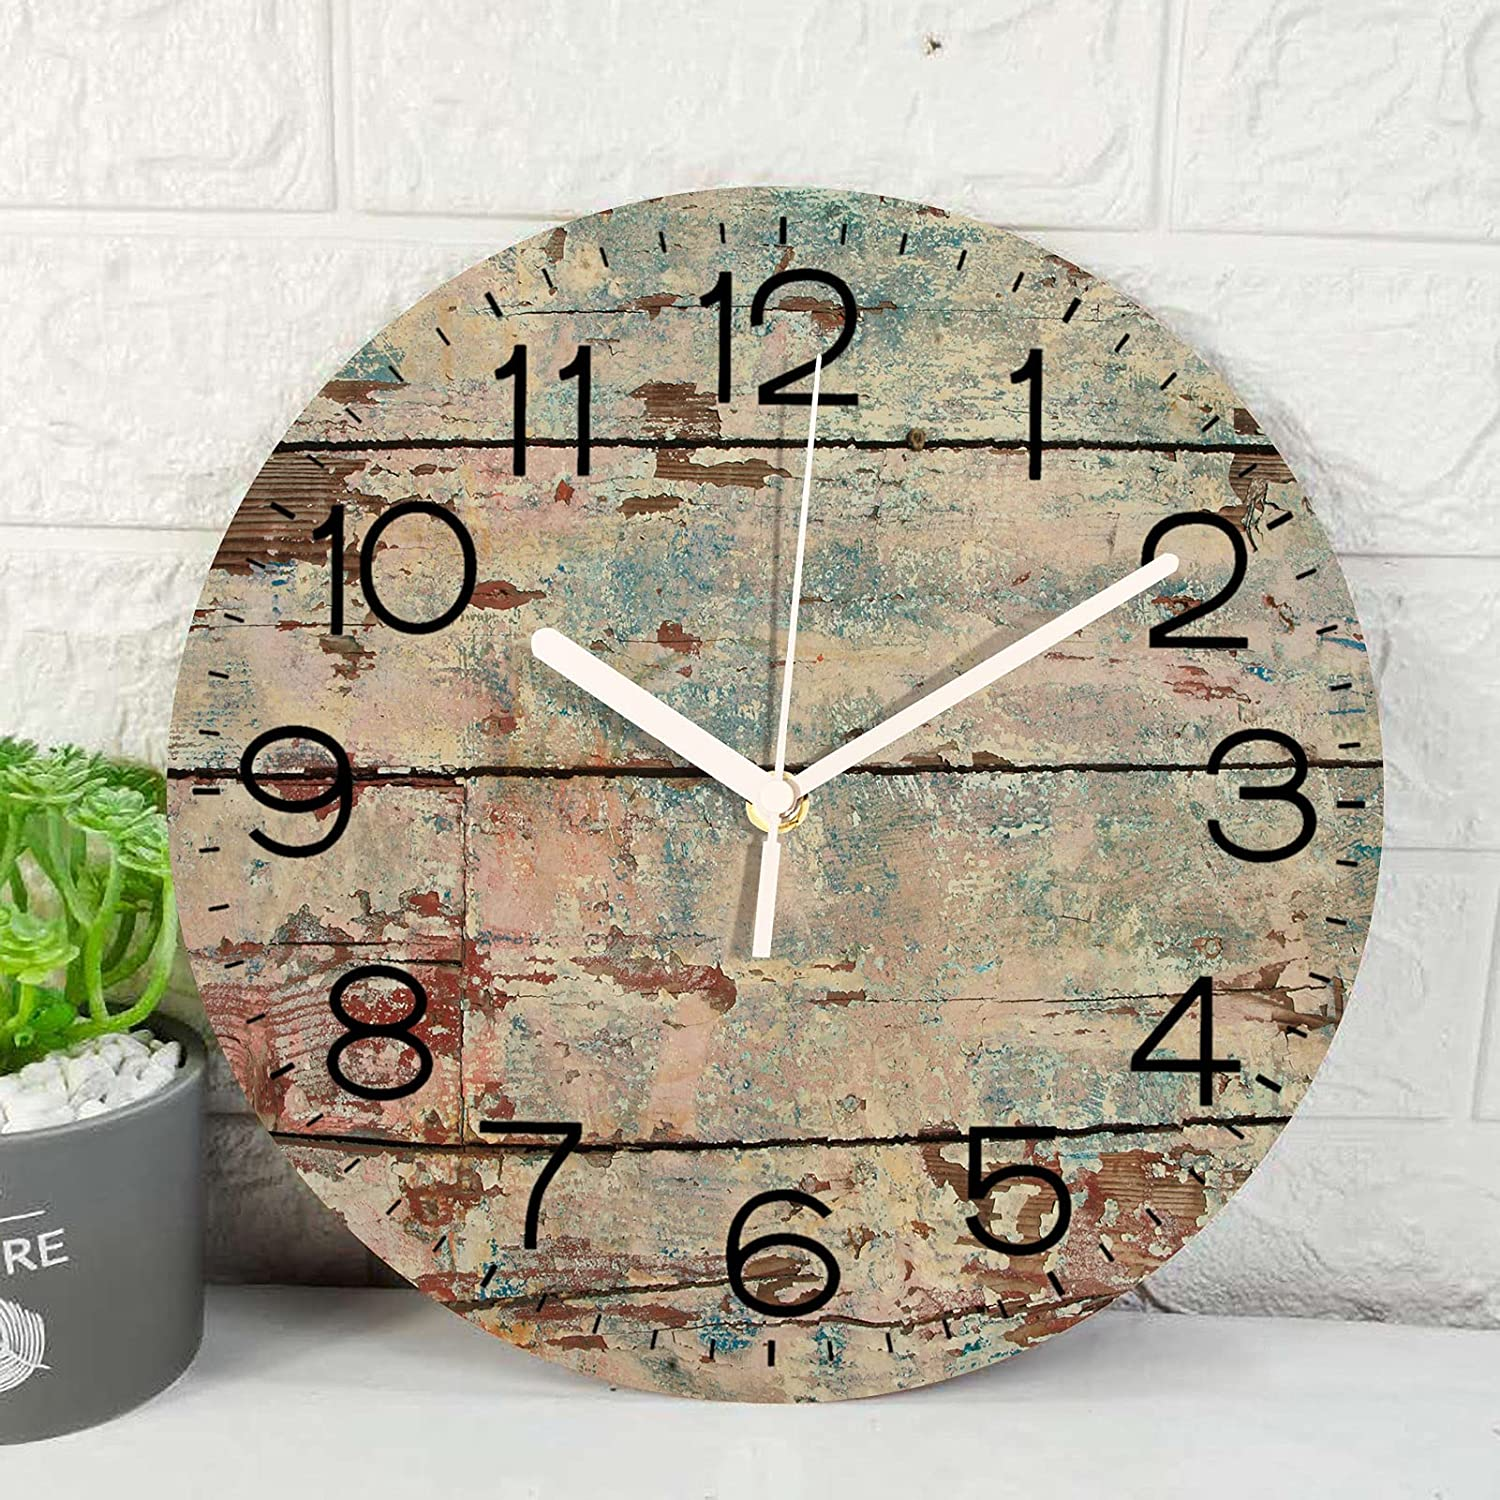 Wooden Wall Clock Silent Non-Ticking , Beach Vintage Wood Round Rustic Coastal Wall Clocks Decor for Home Kitchen Living Room Office, Battery Operated(12 Inch)